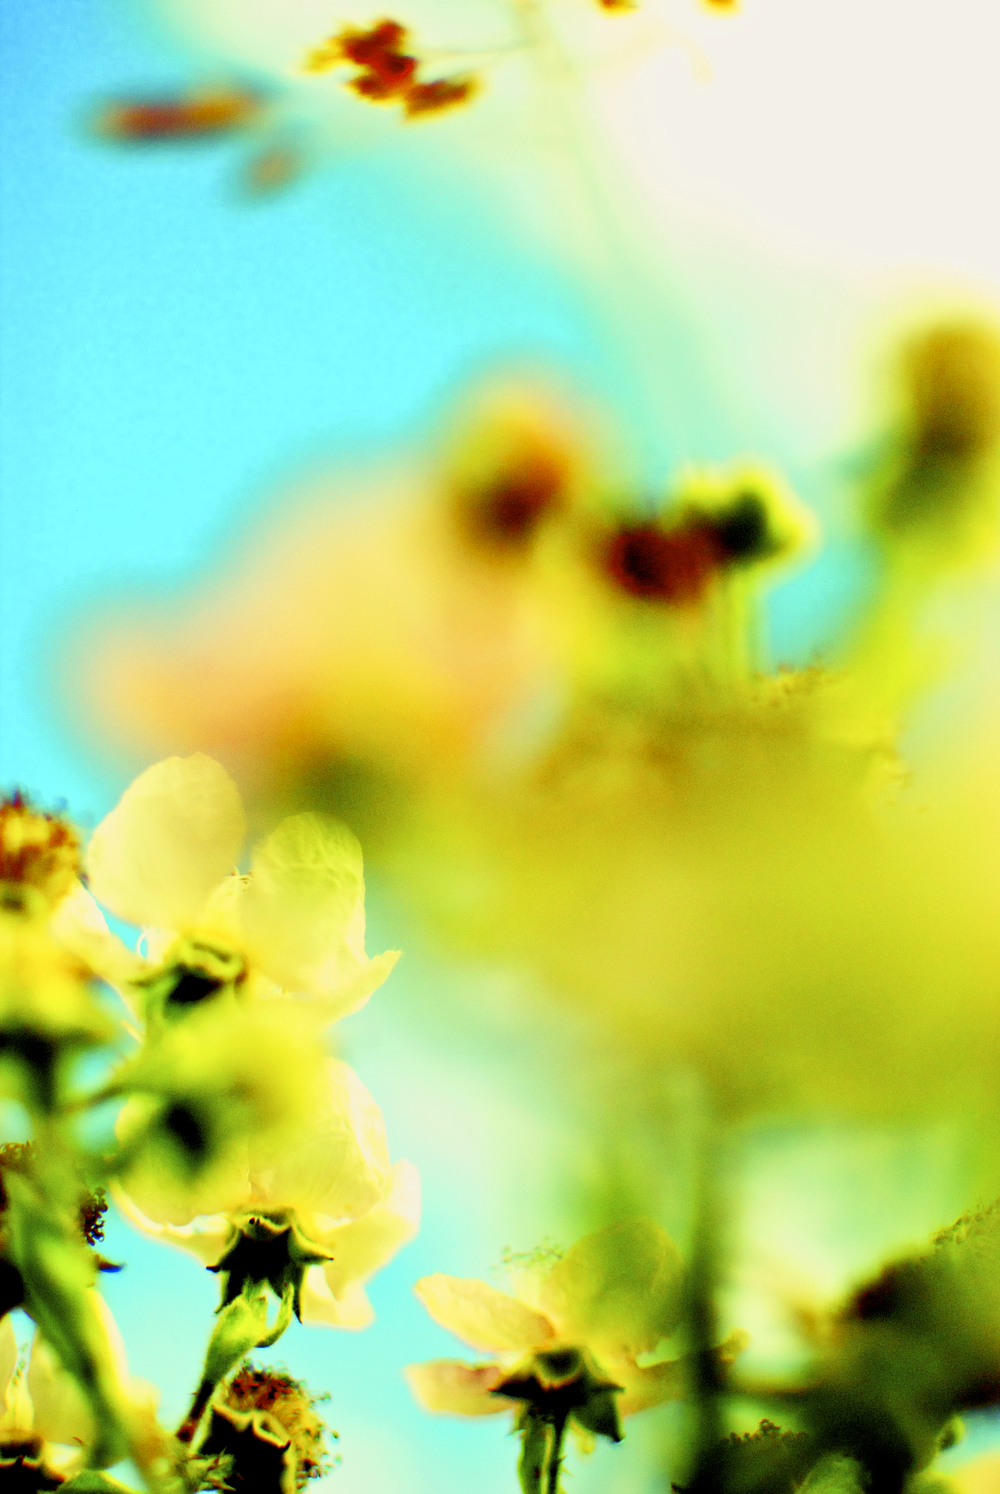 Blurred Yellow Rose.jpg